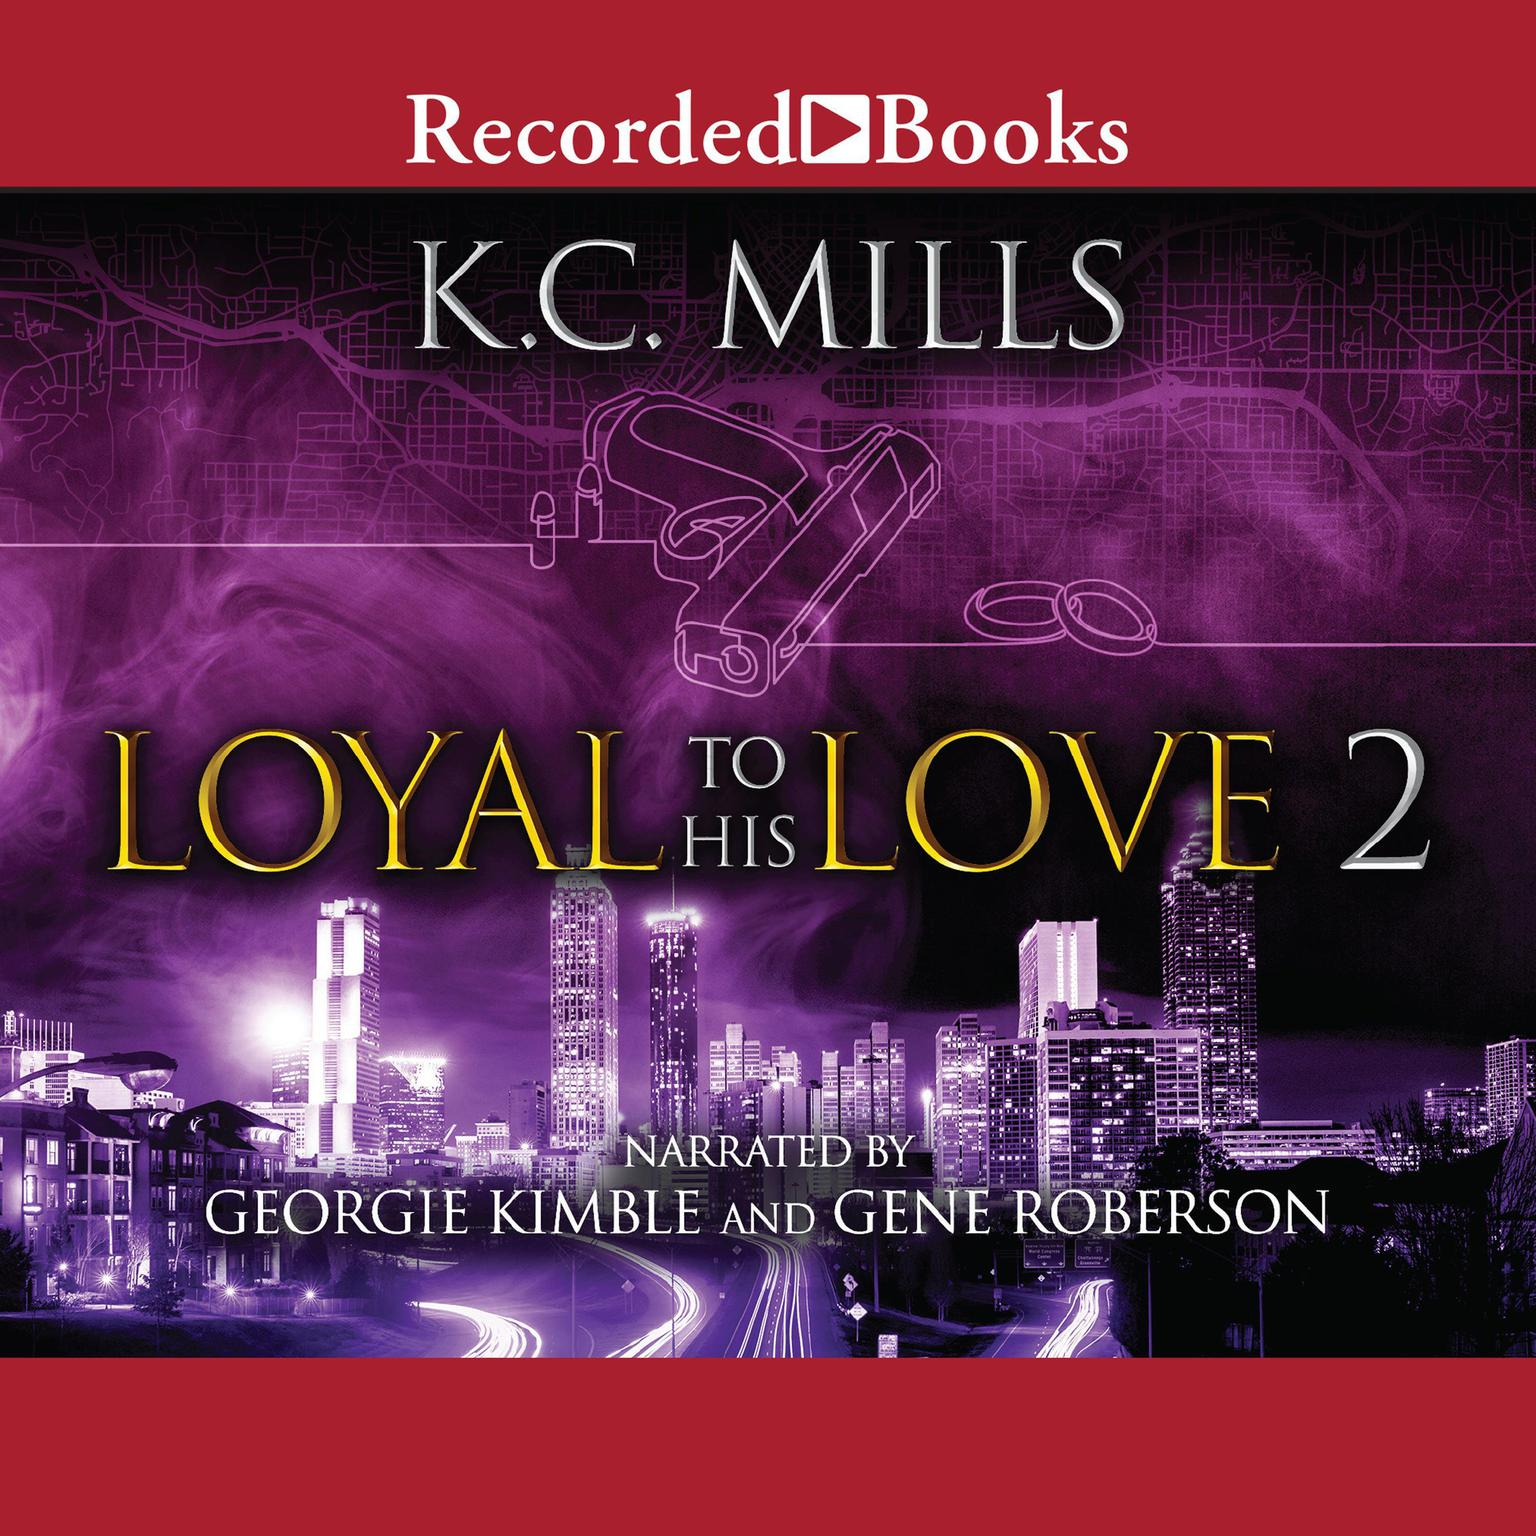 Loyal to His Love 2 Audiobook, by K. Charelle